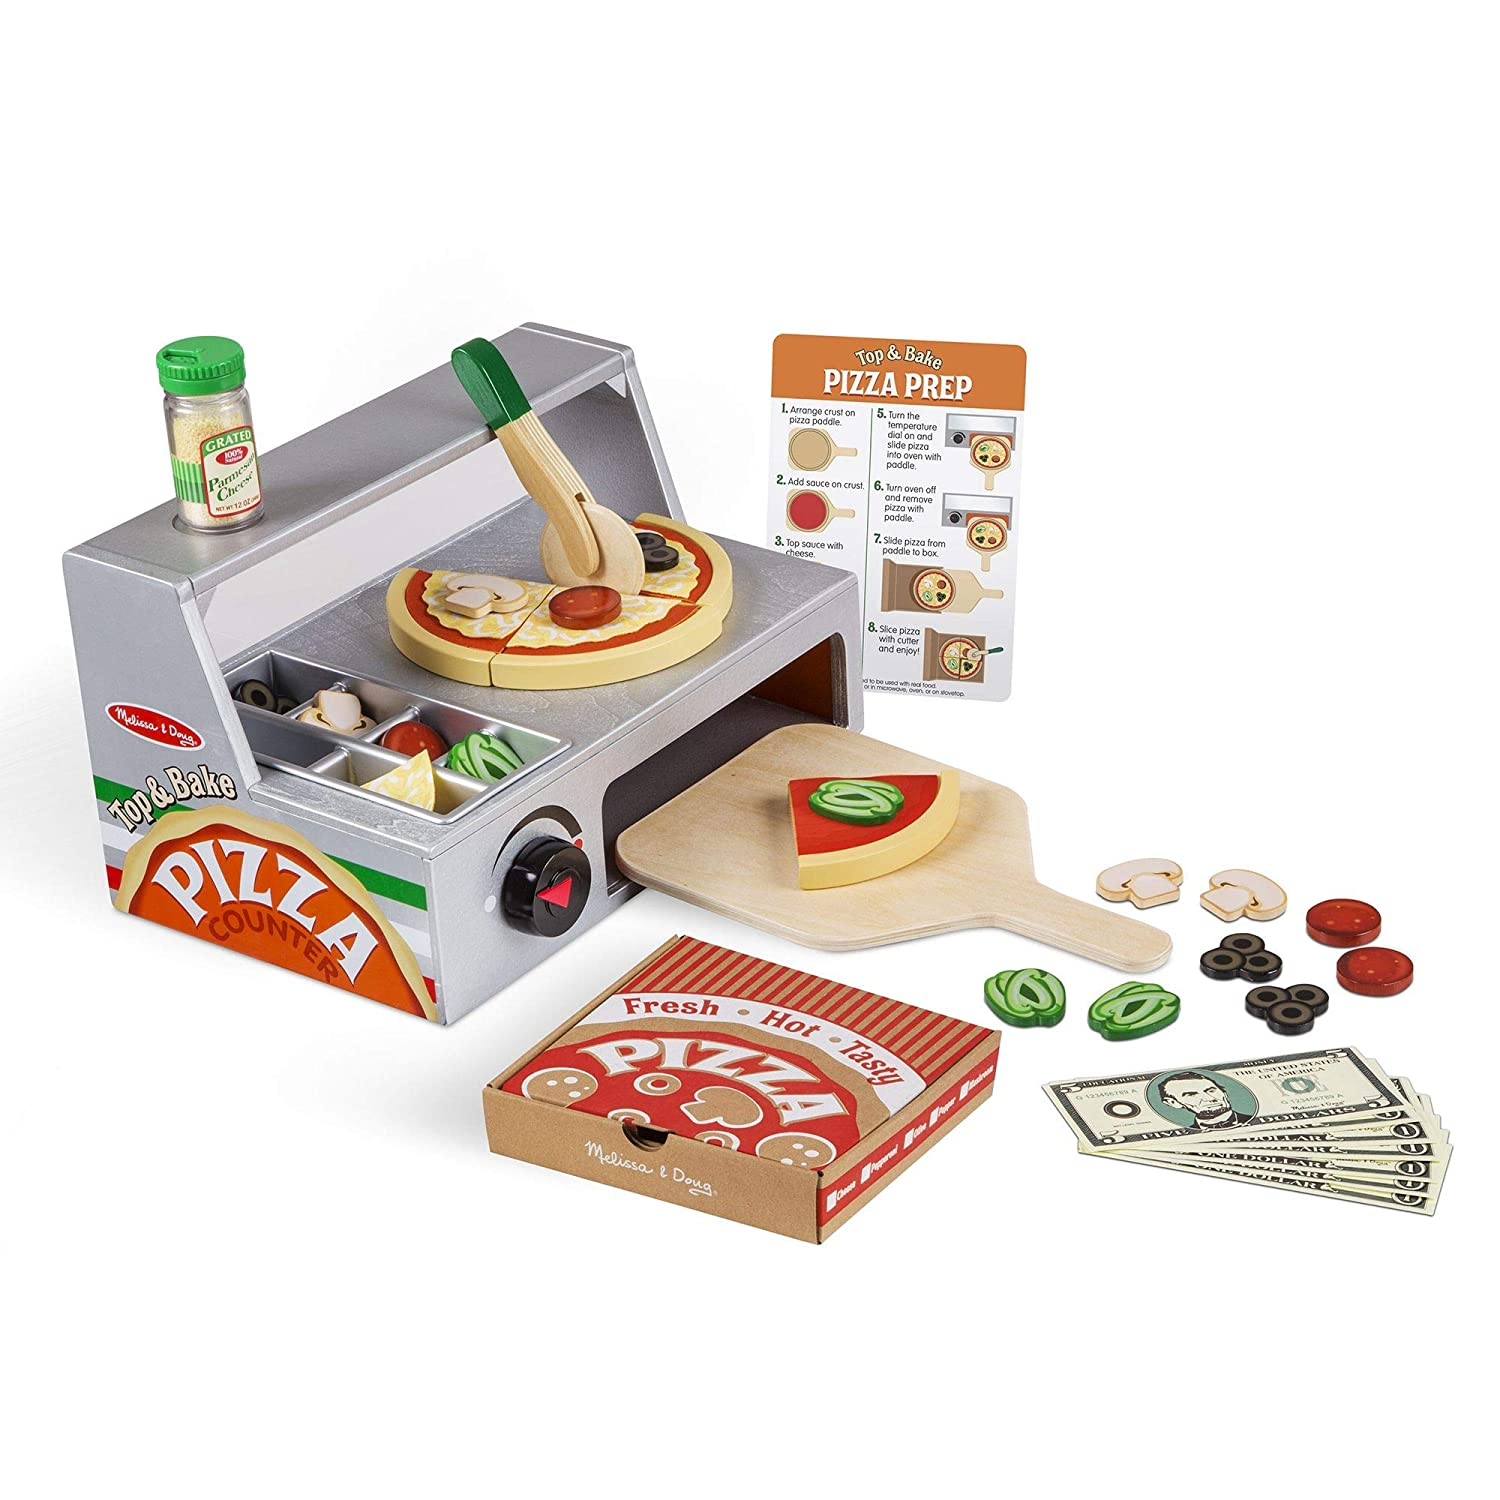 "Melissa & Doug Top and Bake Wooden Pizza Counter Play Food Set, Pretend Play, Helps Support Cognitive Development, 34 Pieces, 7.75"" H x 9.25"" W x 13.25"" L"